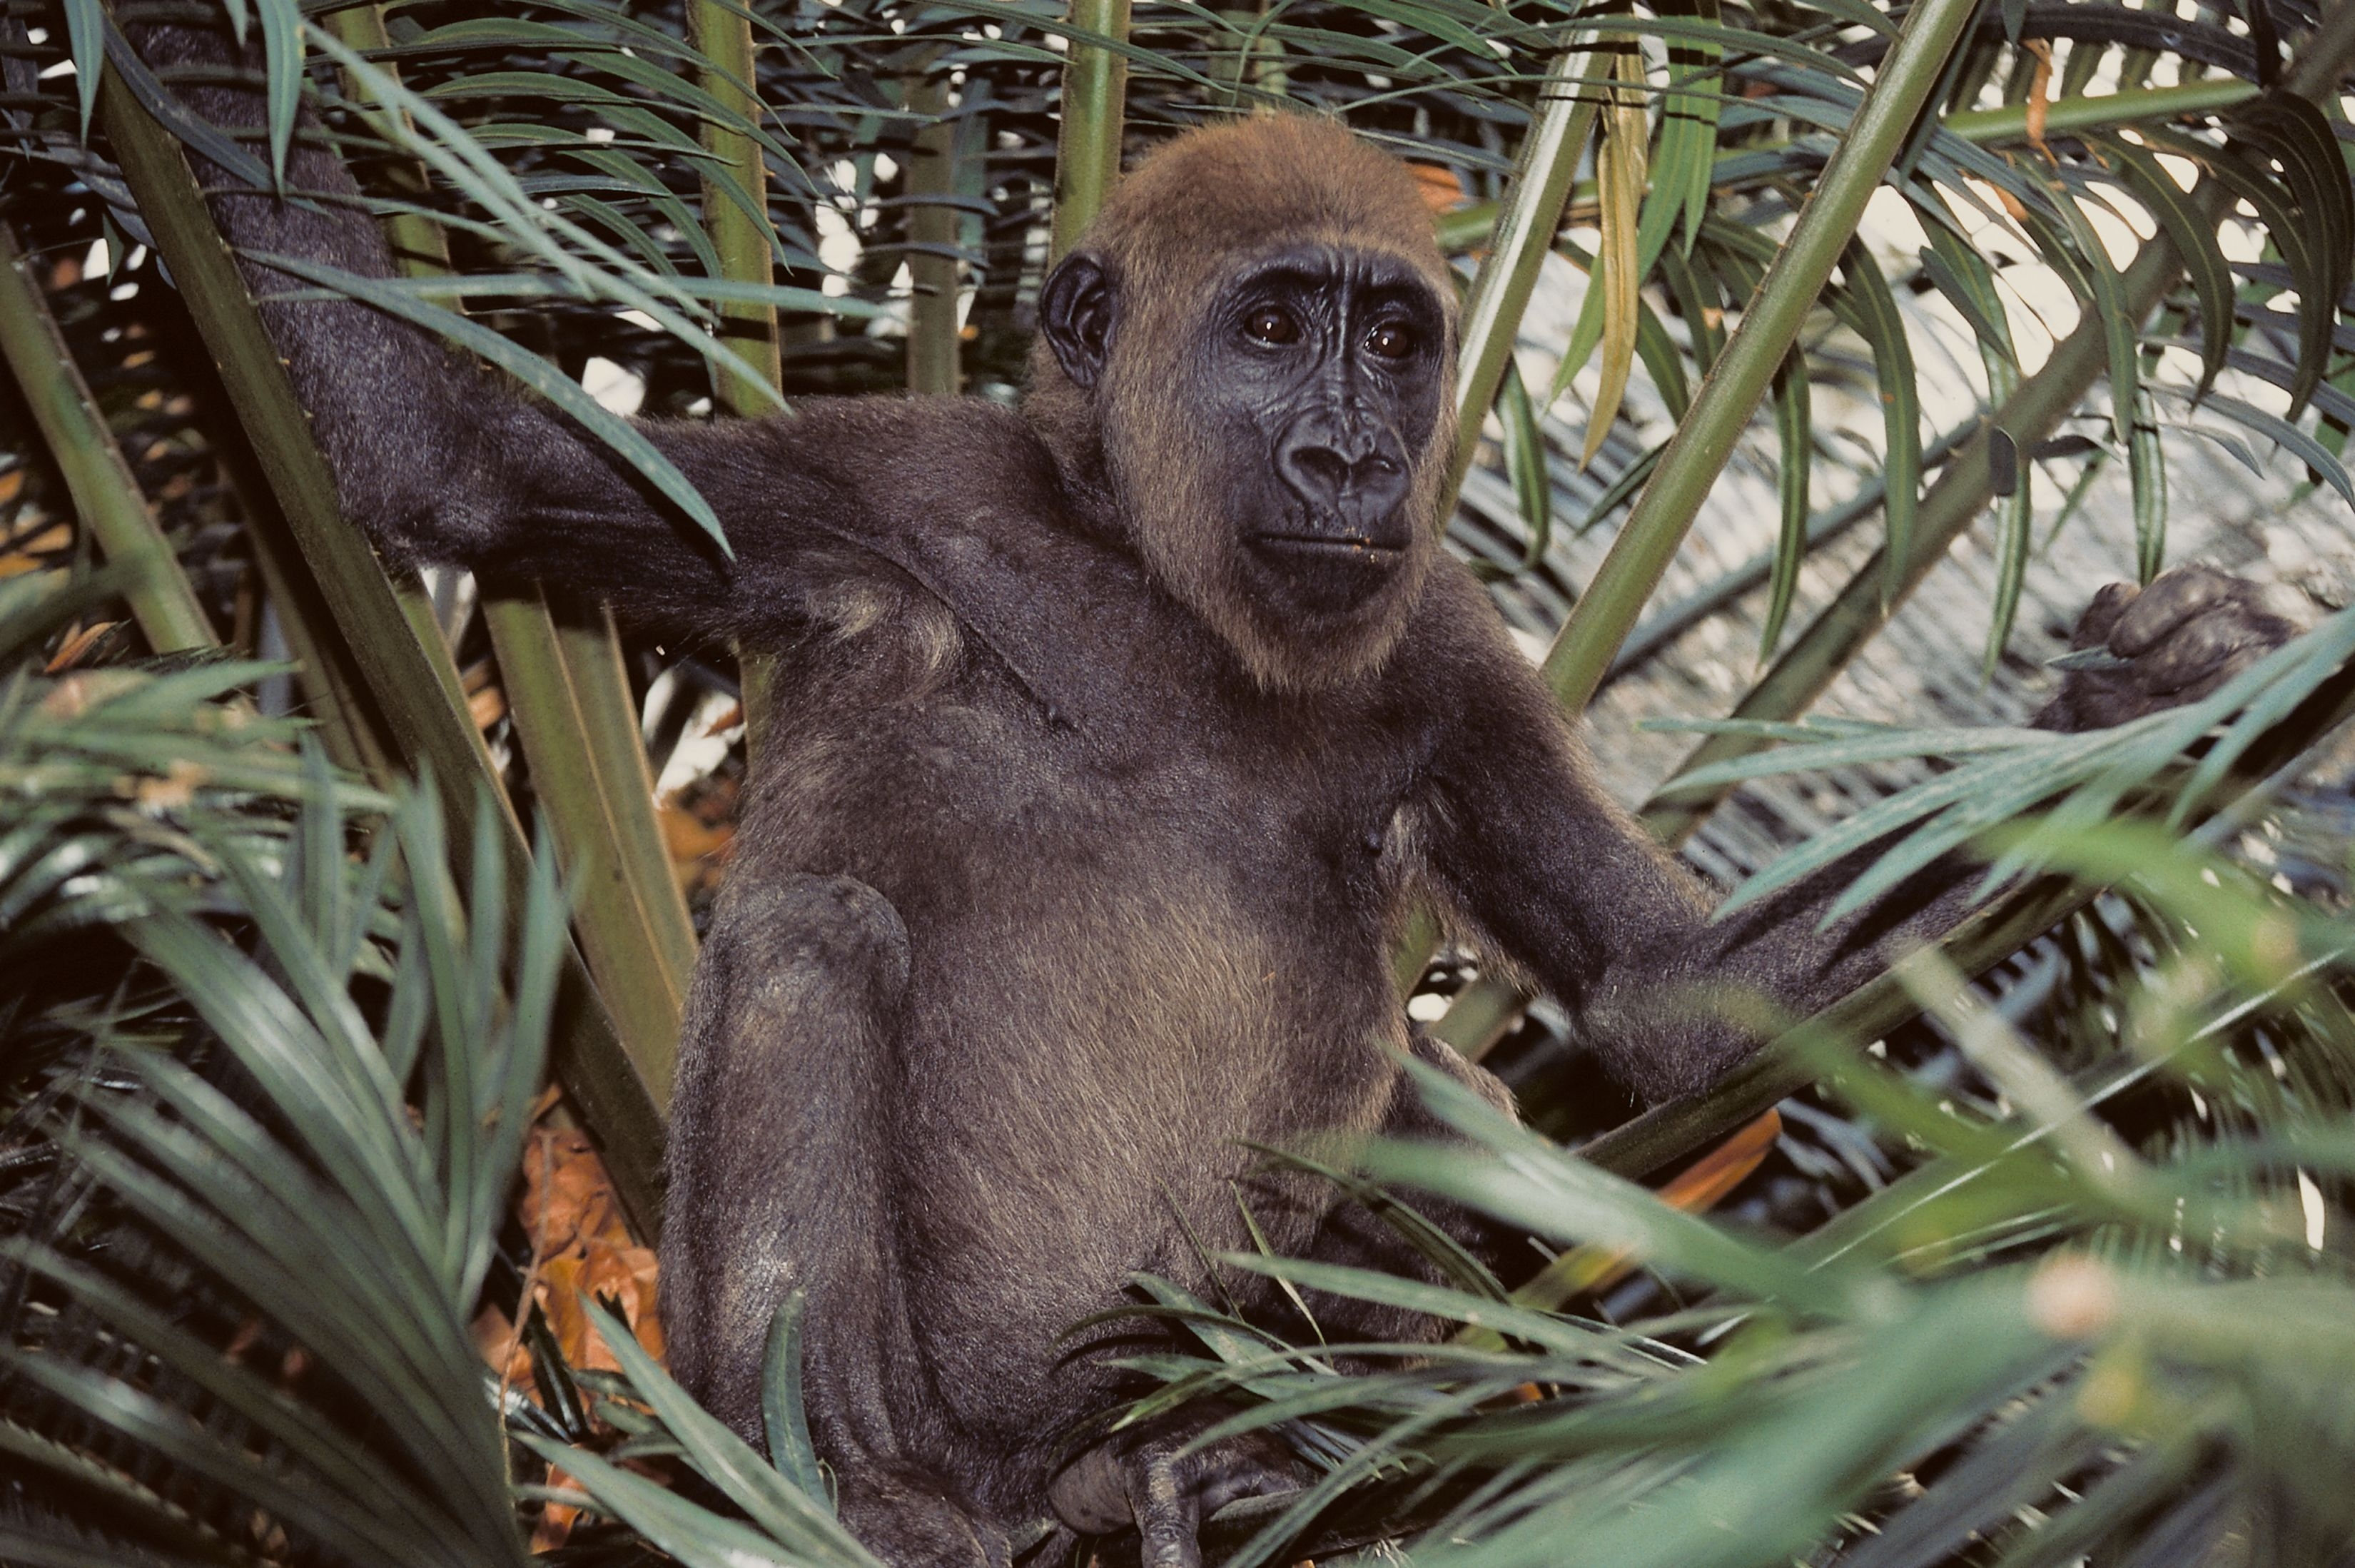 Cameroon is wildlife rich